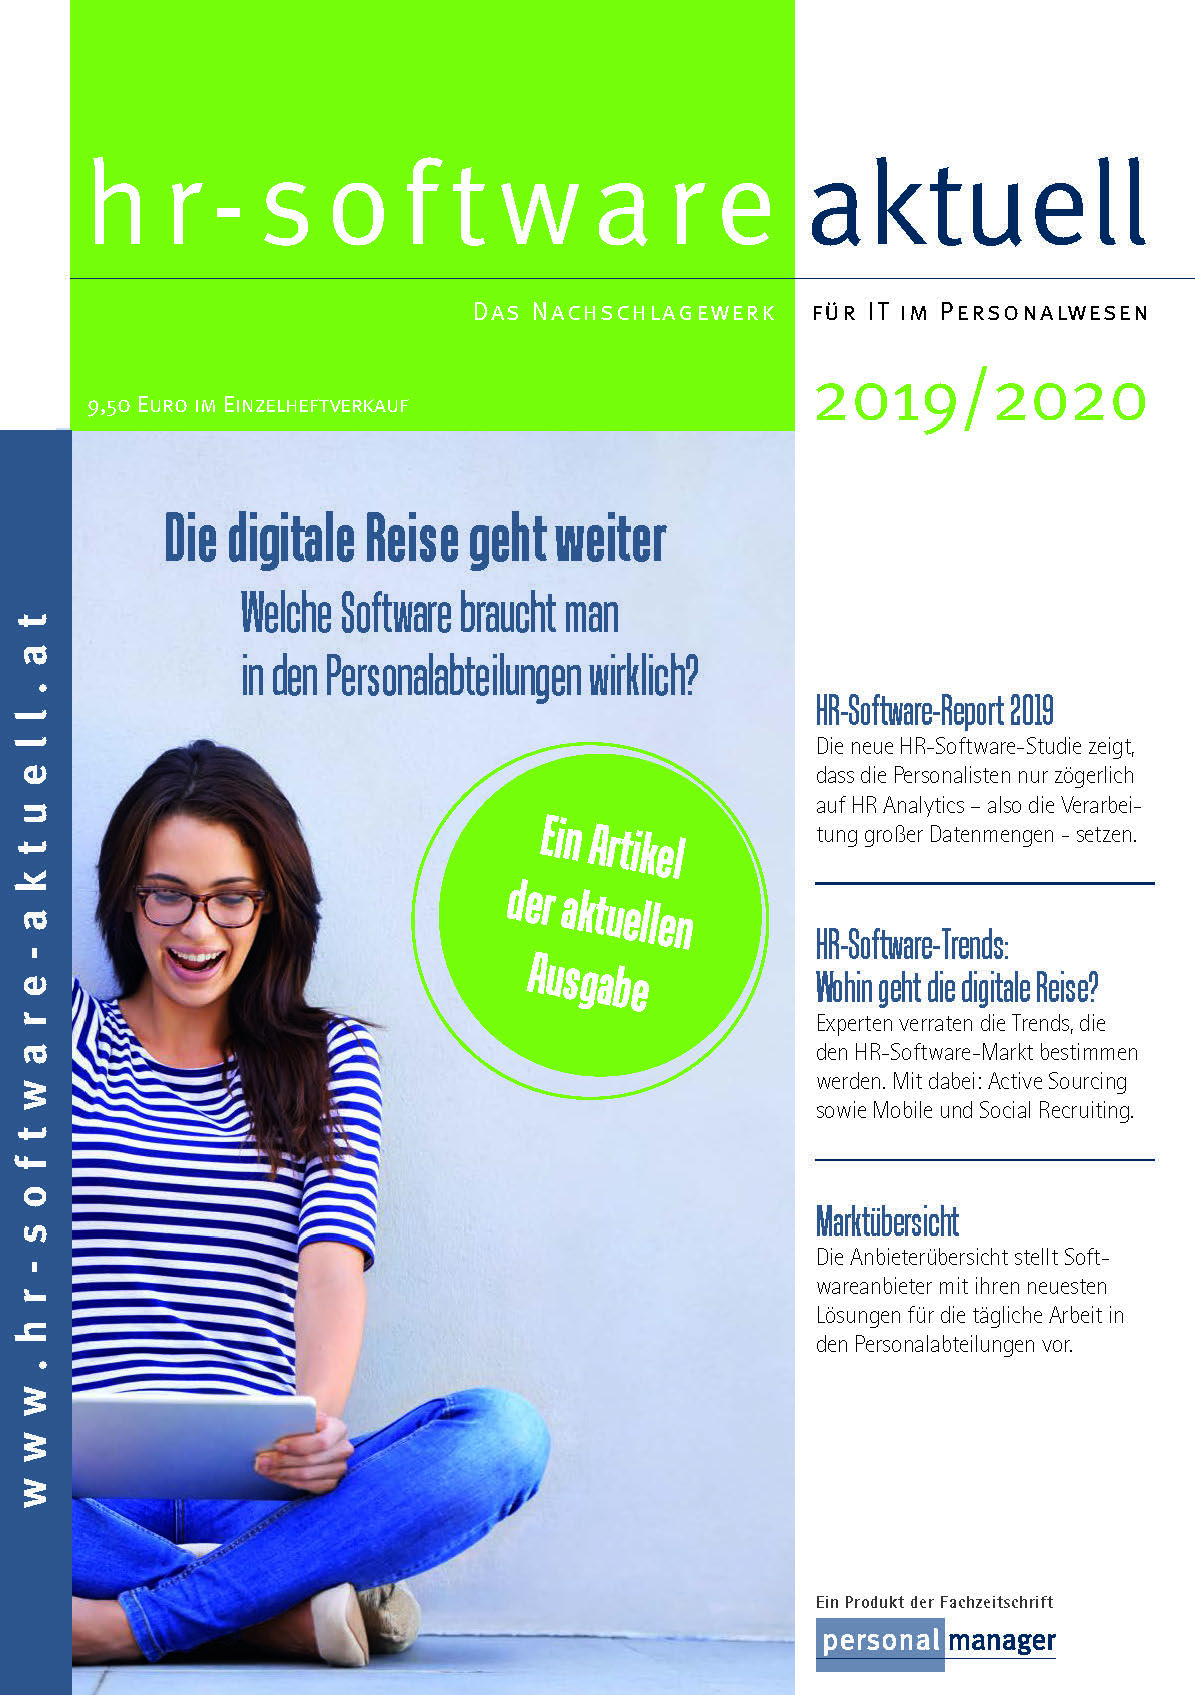 Thumbnail of https://noch-ein-hr-blog.de/hr-software-trends-wohin-geht-die-digitale-reise/